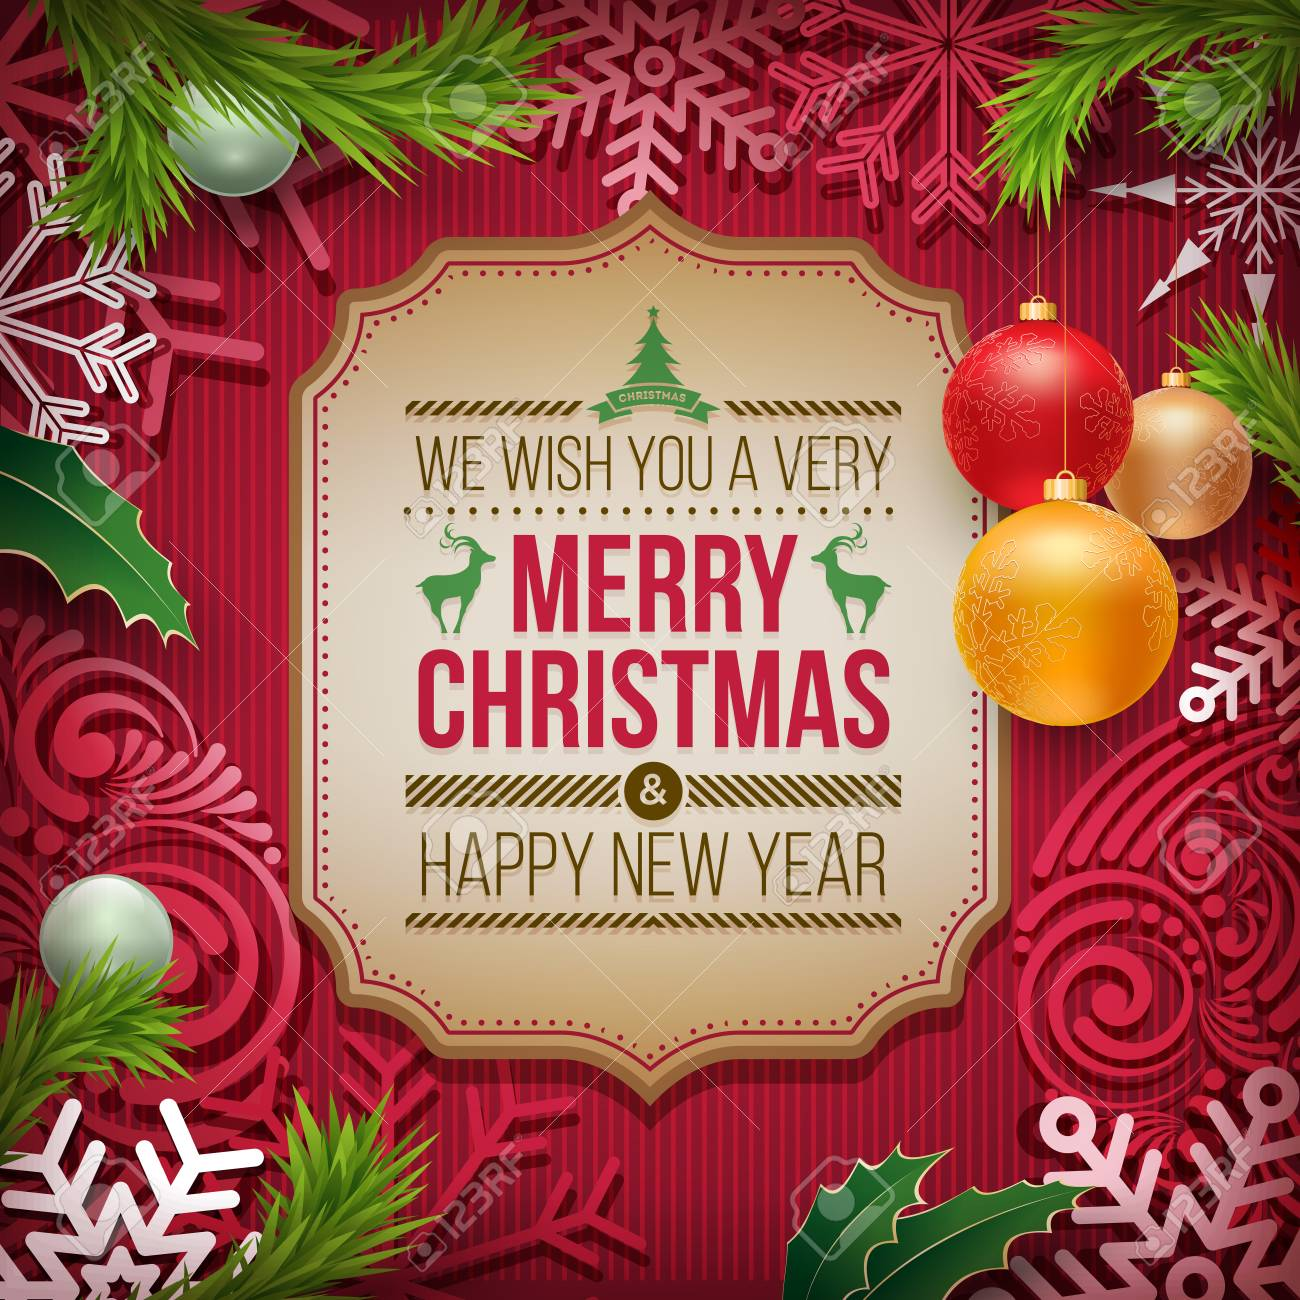 Christmas And New Year Wishes.Vector Christmas And New Year Wishes On Card Christmas Related